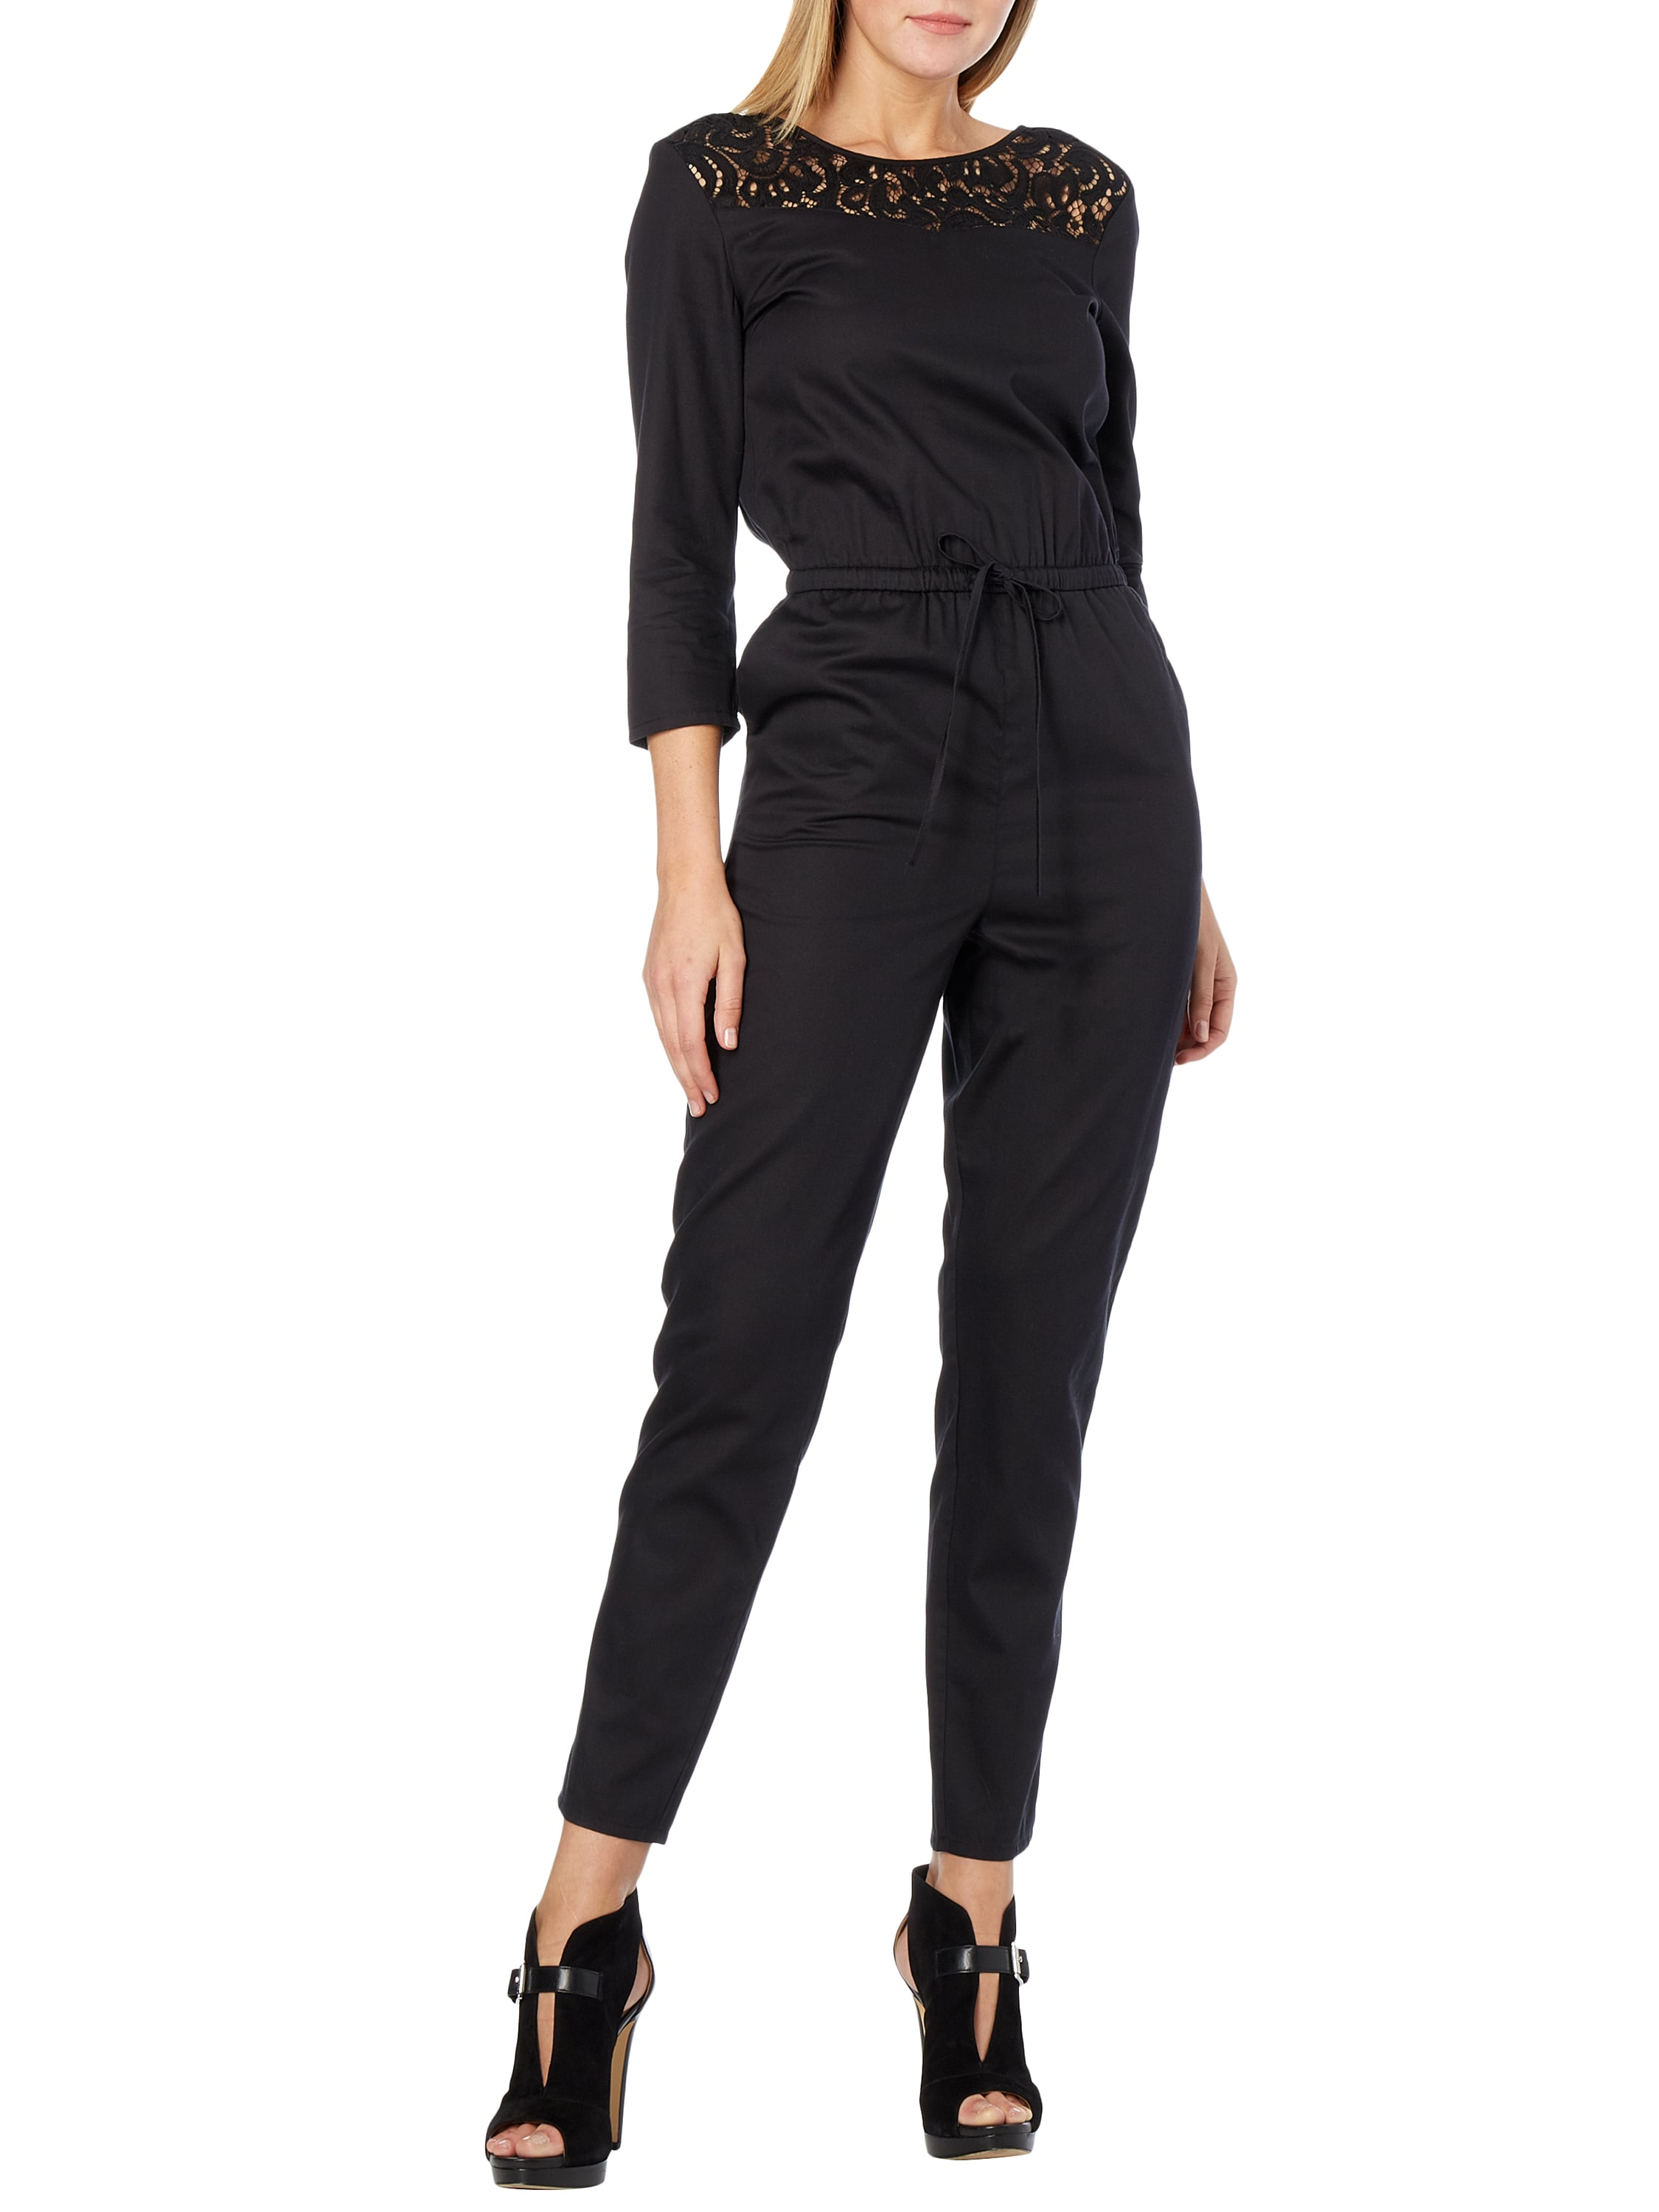 tom tailor denim jumpsuit mit einsatz aus h kelspitze in grau schwarz online kaufen 9603618. Black Bedroom Furniture Sets. Home Design Ideas